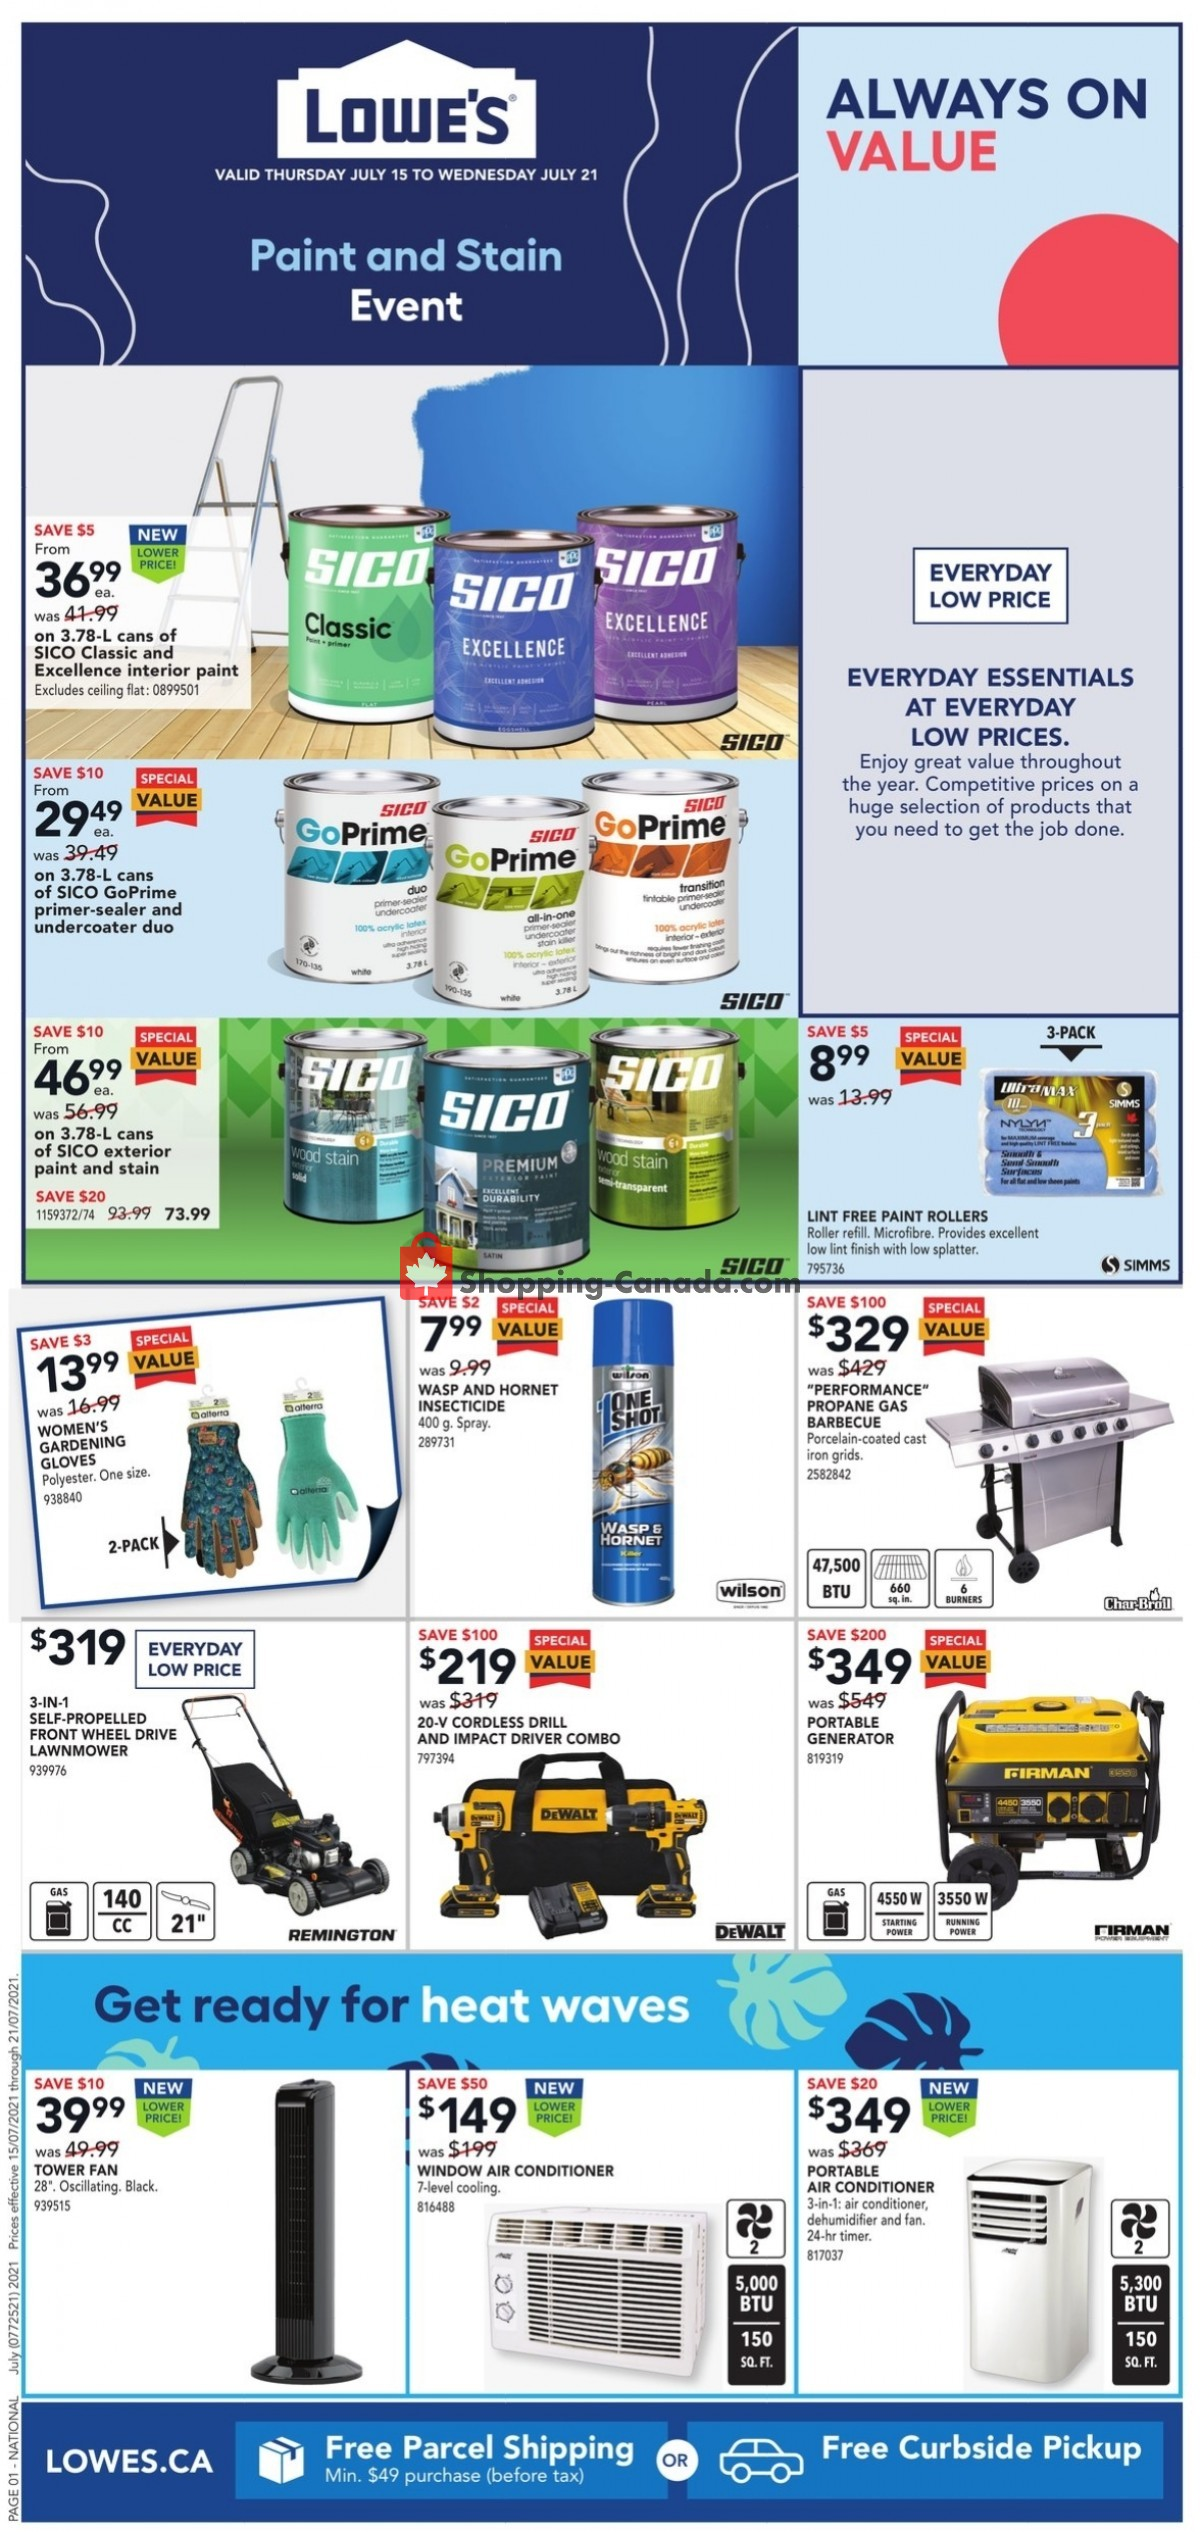 Flyer Lowe's Canada - from Thursday July 15, 2021 to Wednesday July 21, 2021